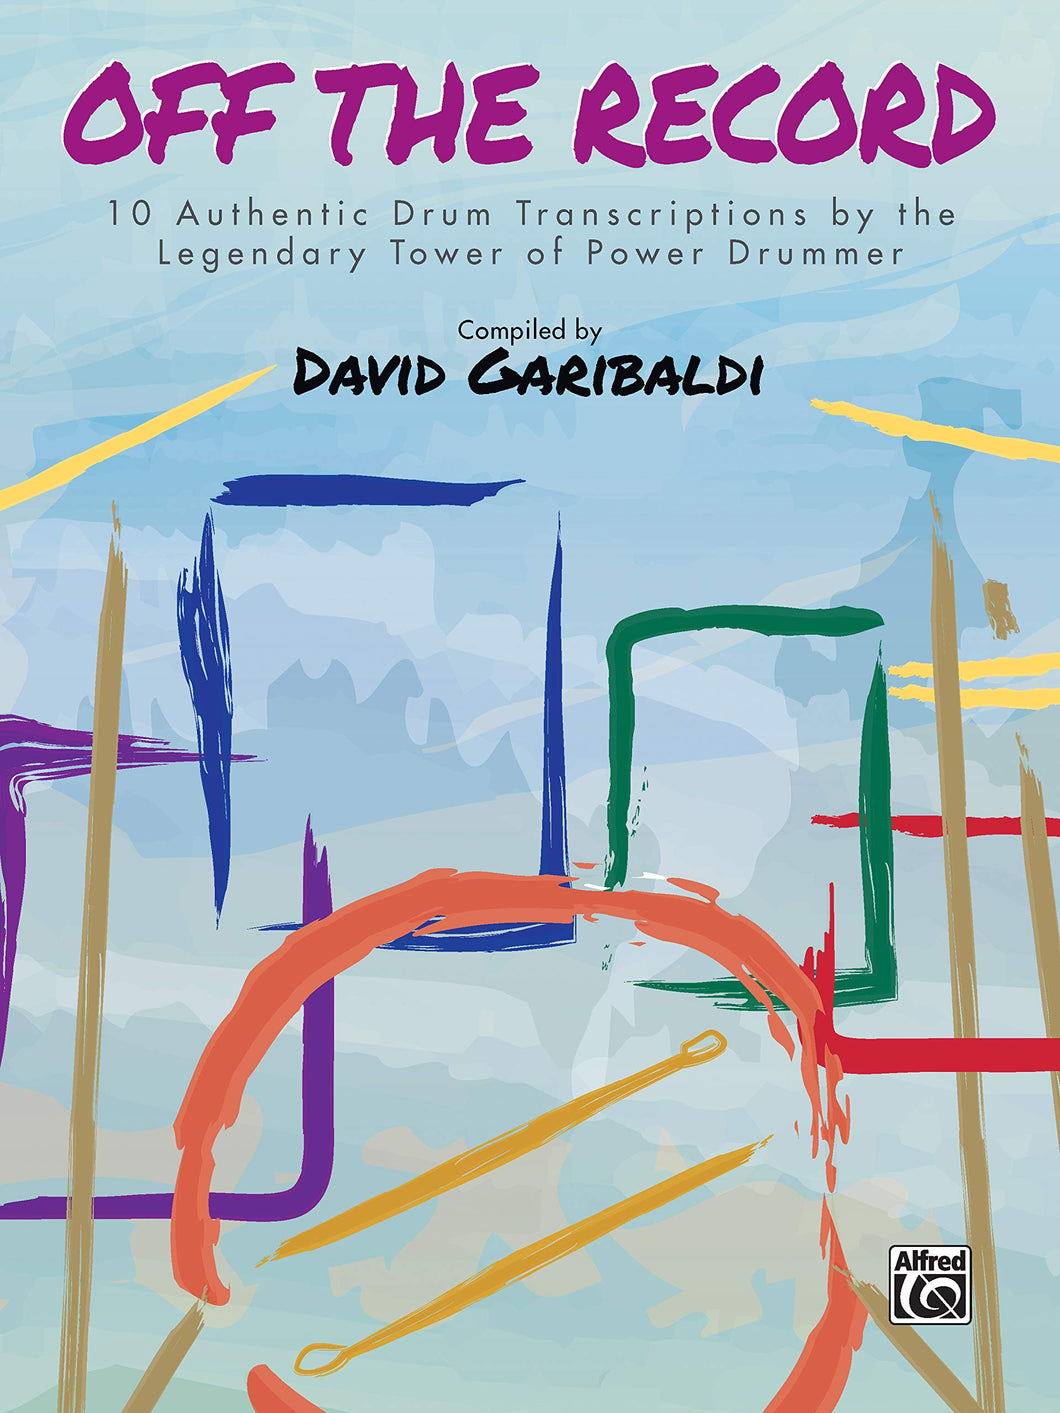 In the Slot - David Garibaldi - Collection of Drum Transcriptions / Drum Sheet Music - Alfred Music DGOTR